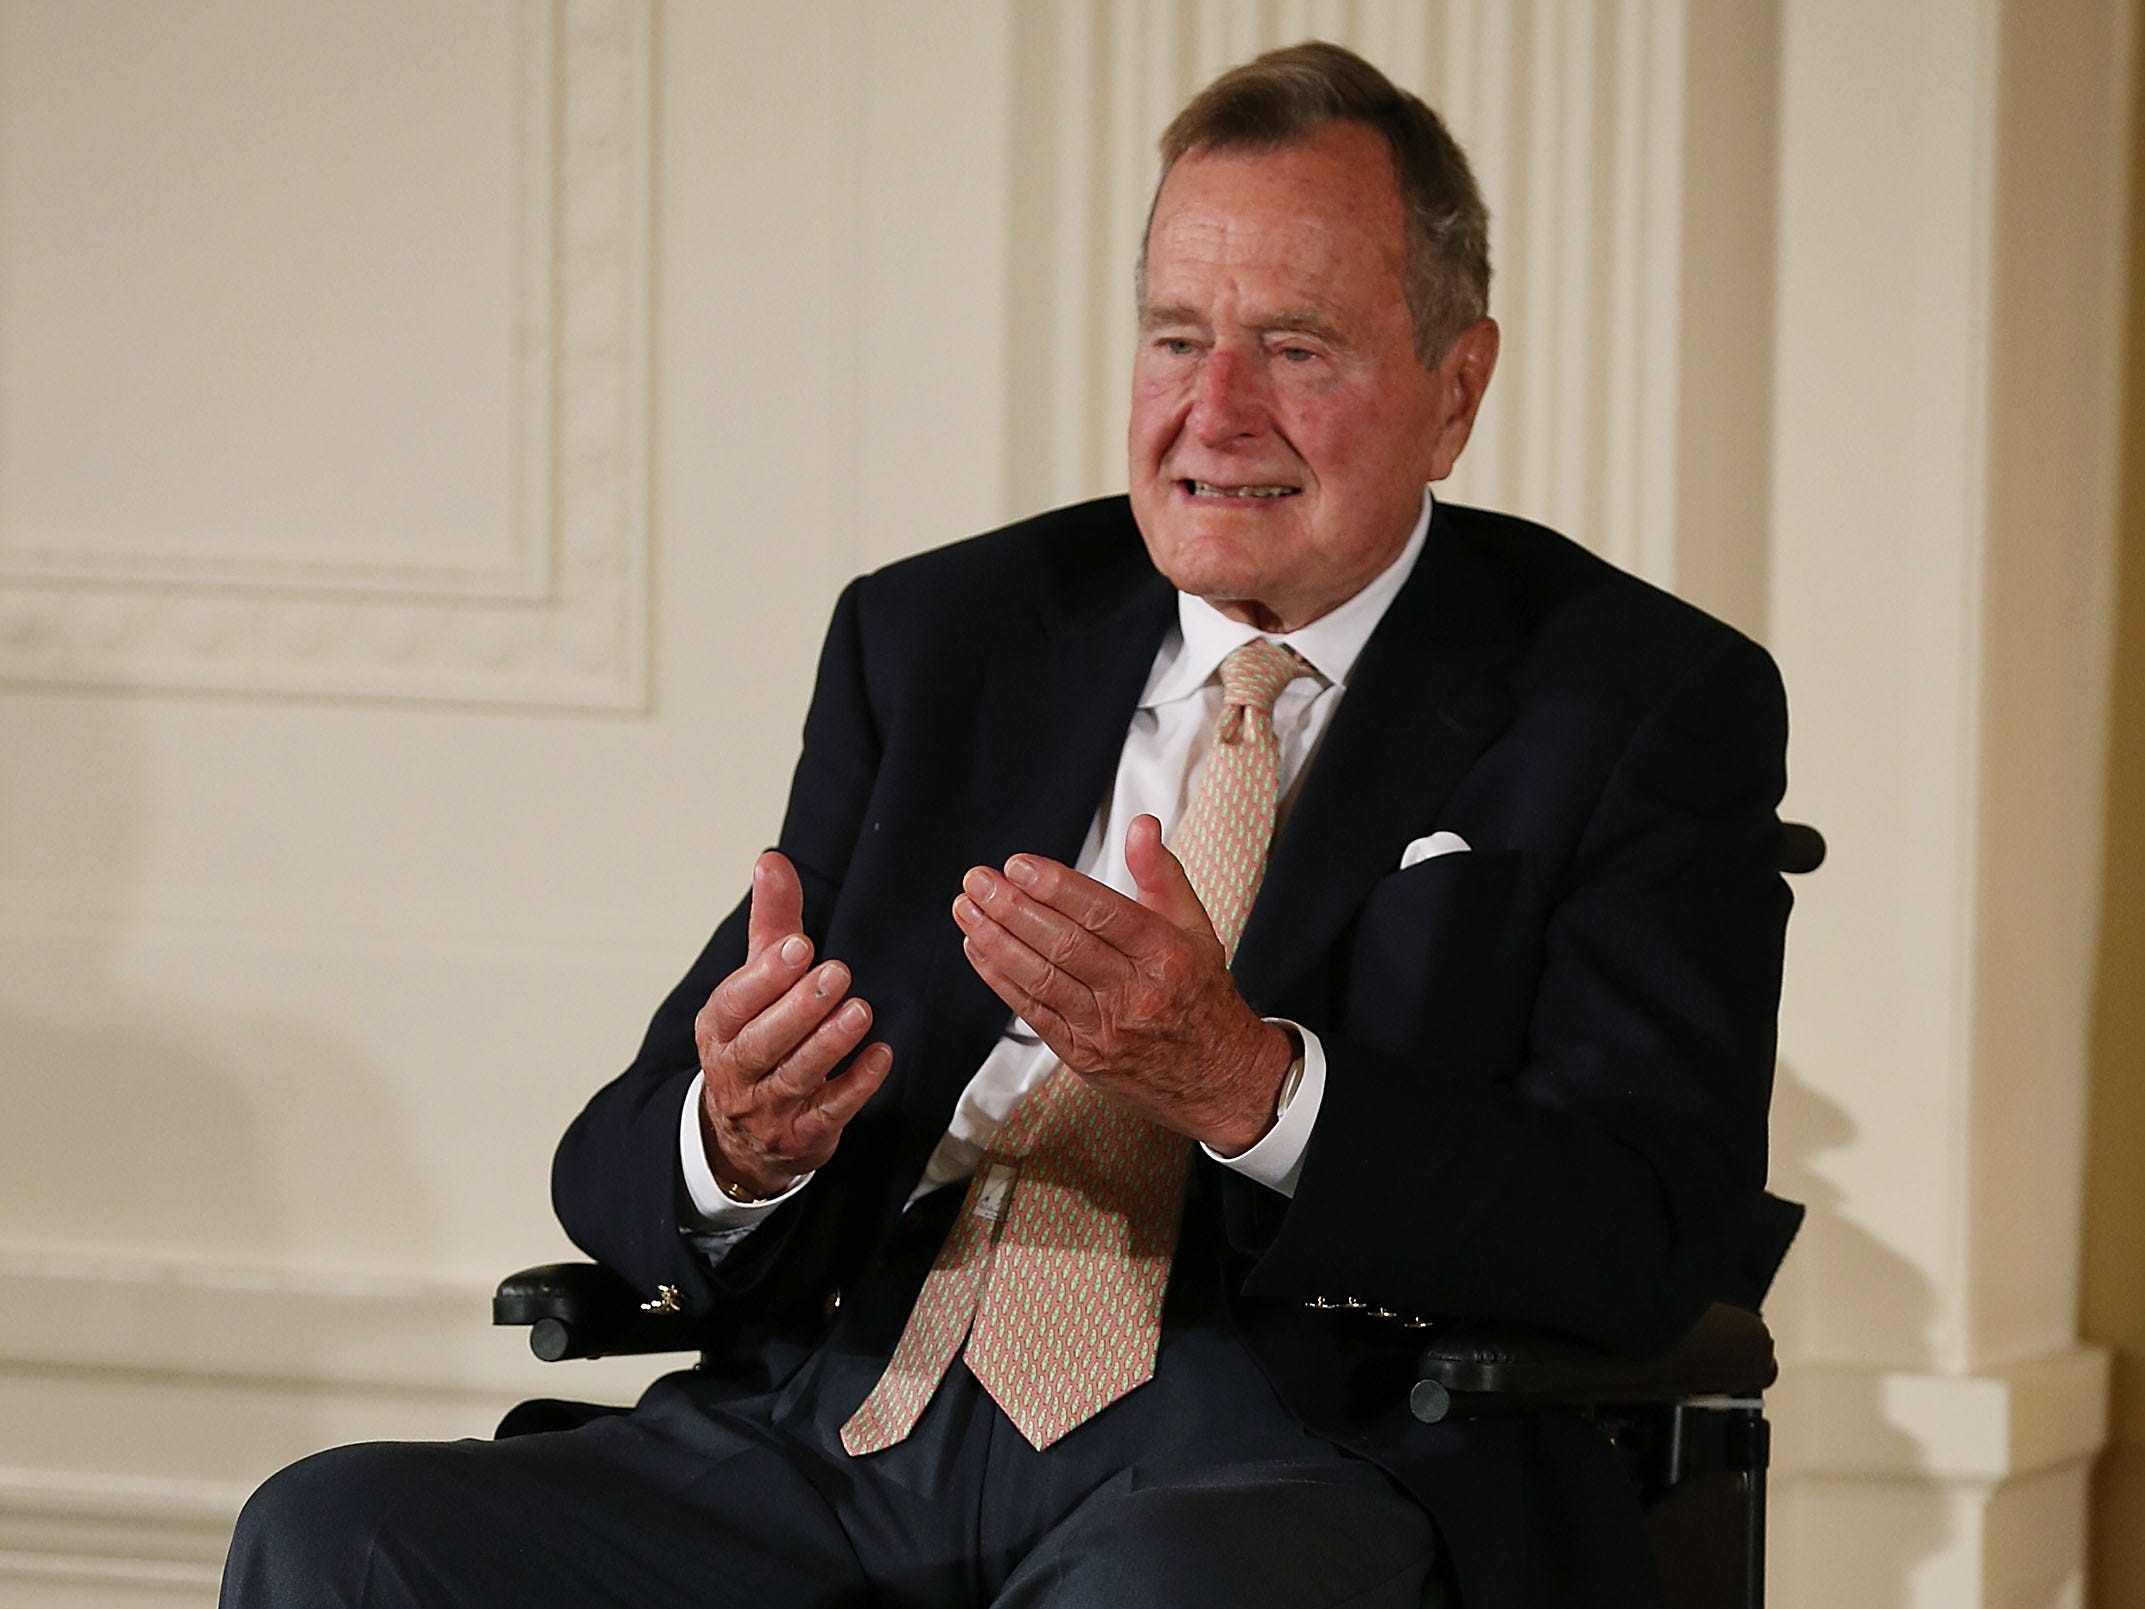 WASHINGTON, DC - JULY 15:  Former President George H. W. Bush wears red stripped socks as he sits in a wheelchair during an event in the East Room at the White House, July 15, 2013 in Washington, DC. Bush joined President Obama in hosting the event to honor the 5,000th Daily Point of Light Award winner.  (Photo by Mark Wilson/Getty Images) [Via MerlinFTP Drop]